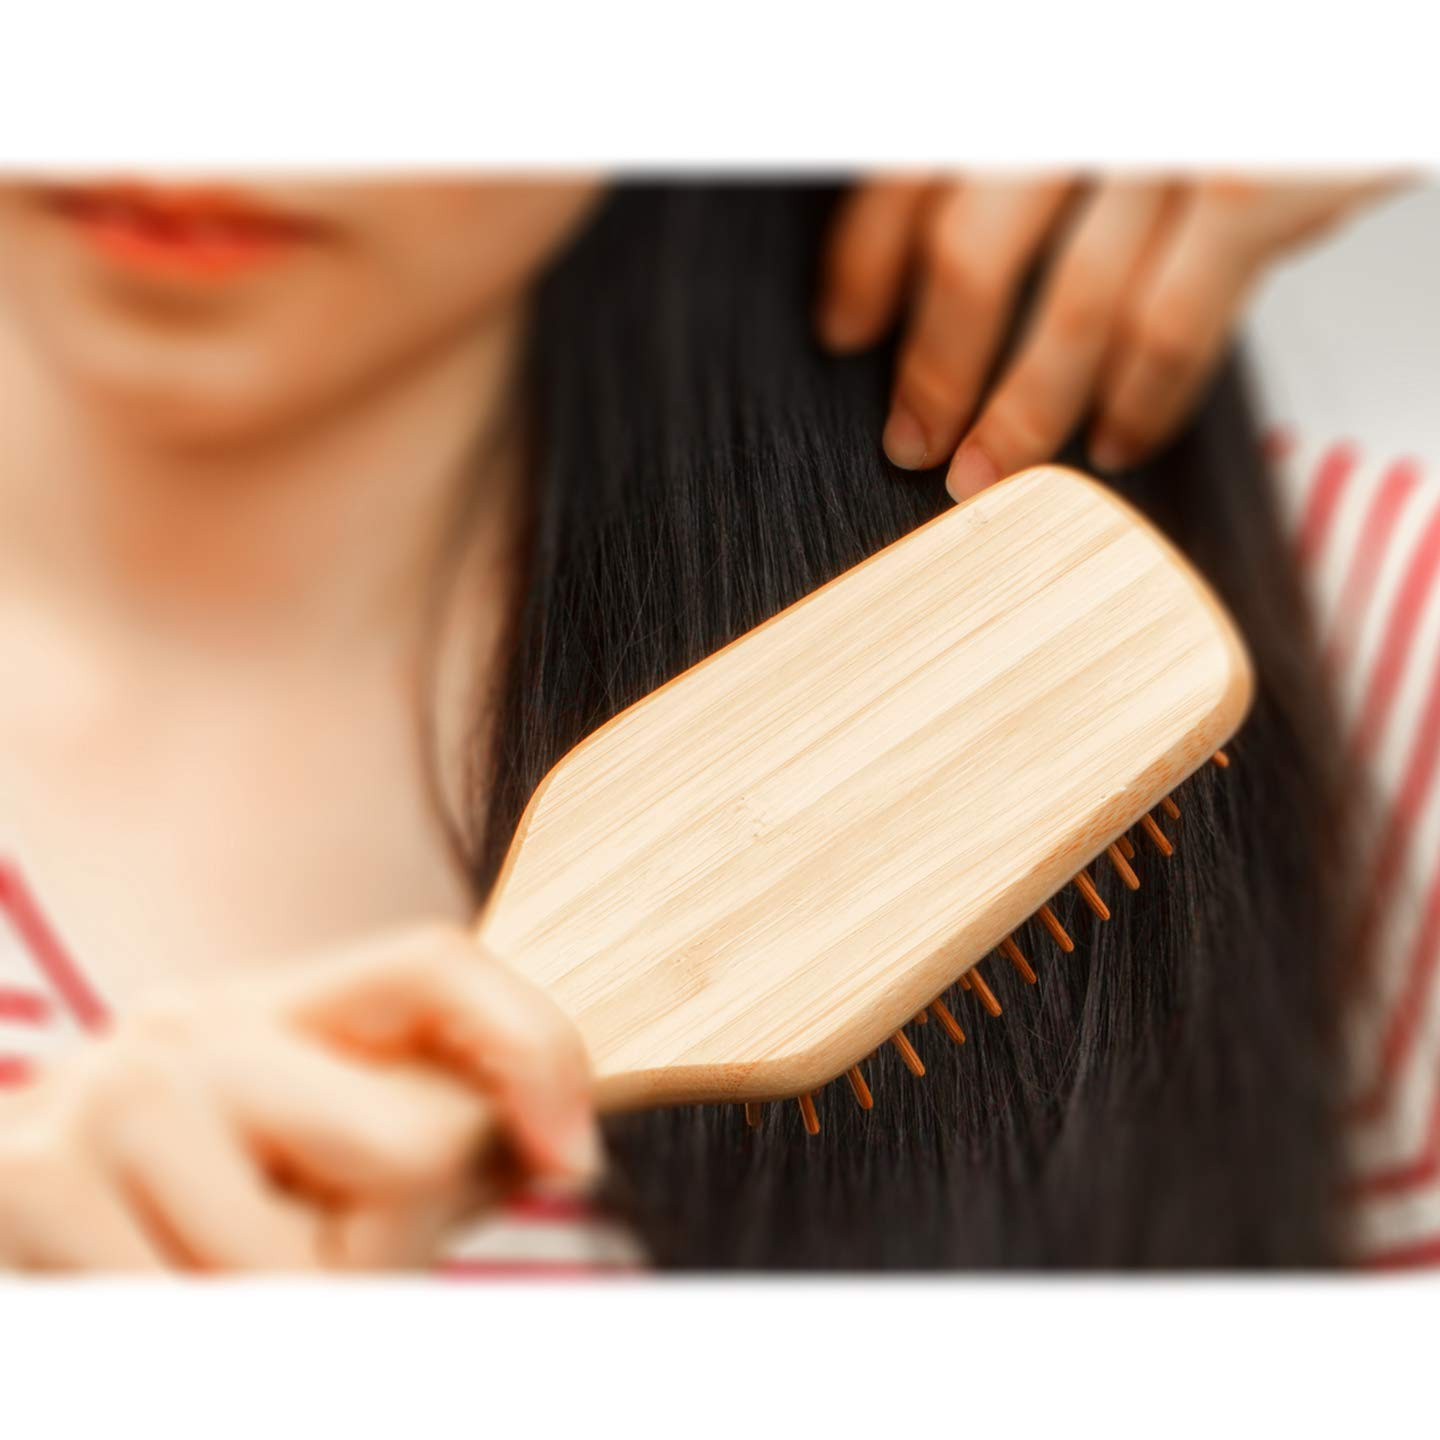 BFWood Bamboo Handle with Bamboo Bristles Paddle Hairbrush for Massaging Scalp Big Handle